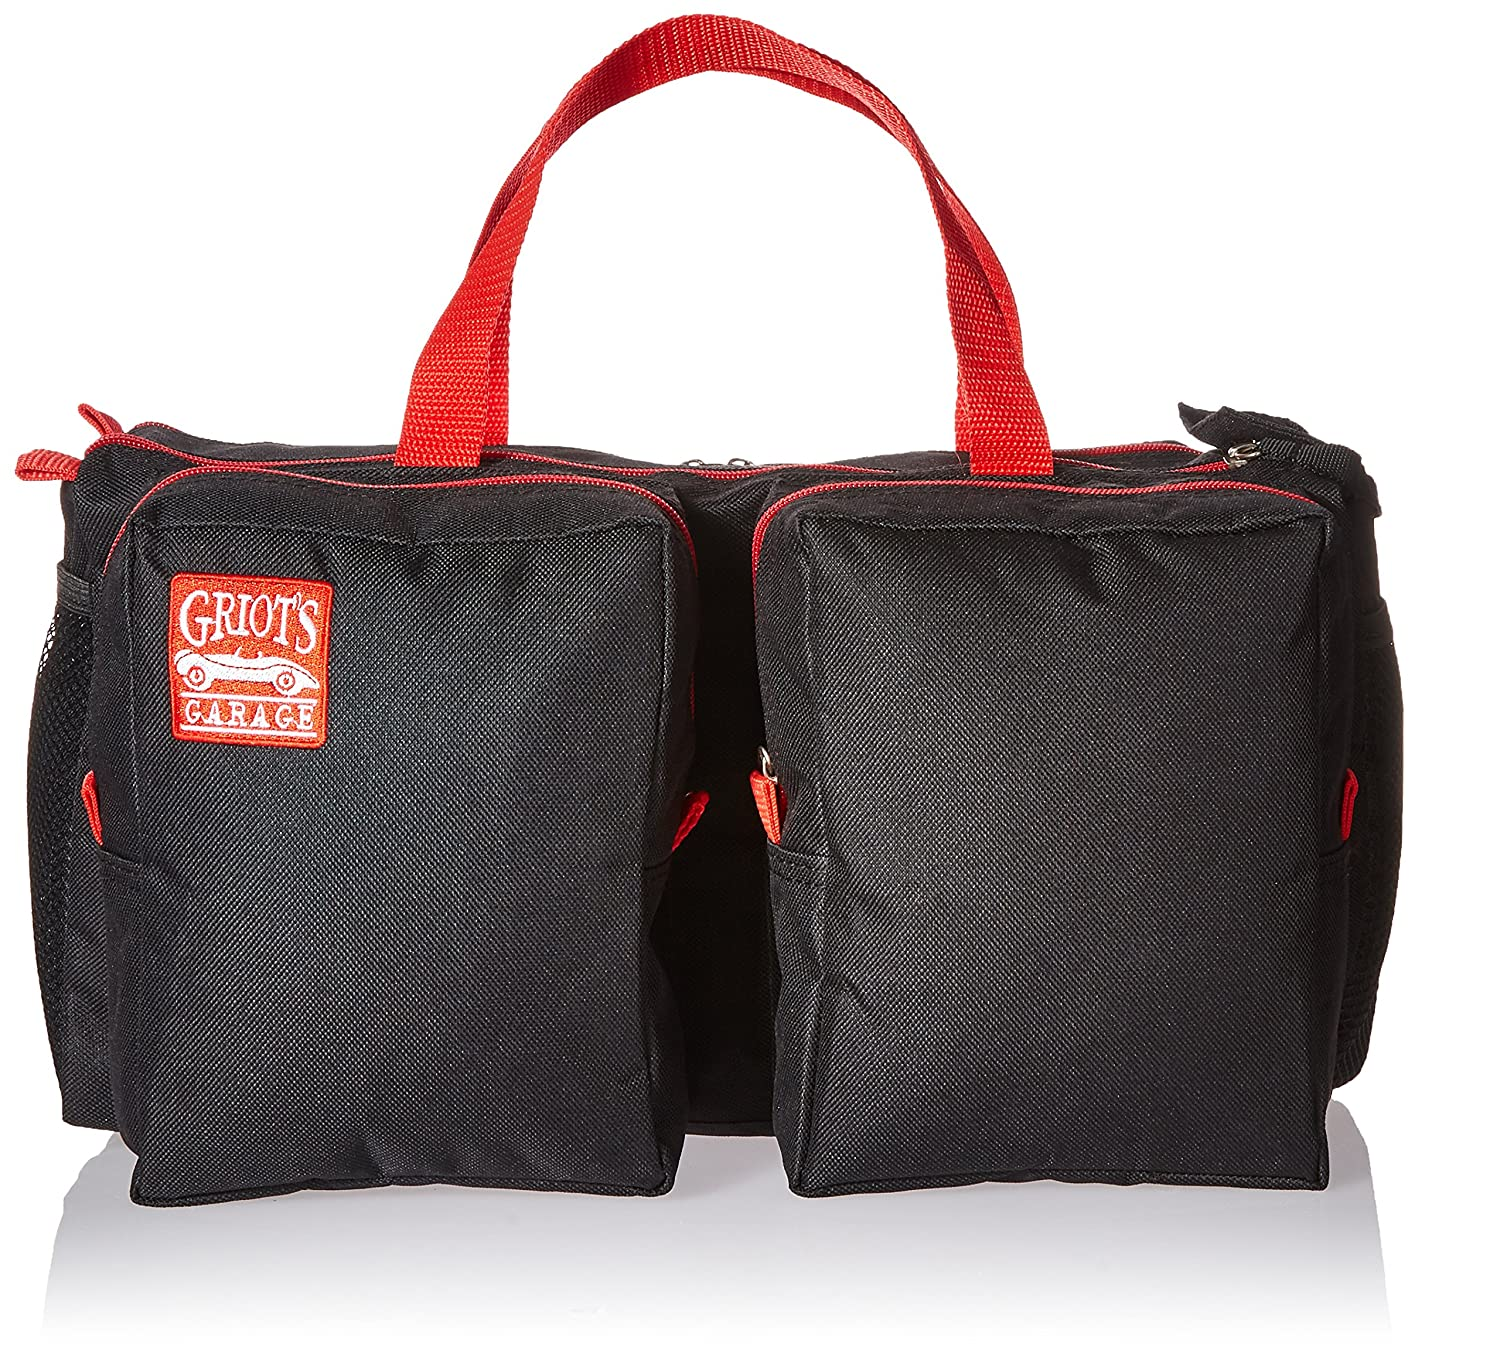 Griot's Garage 77843 Water Resistant Trunk Bag Griot' s Garage